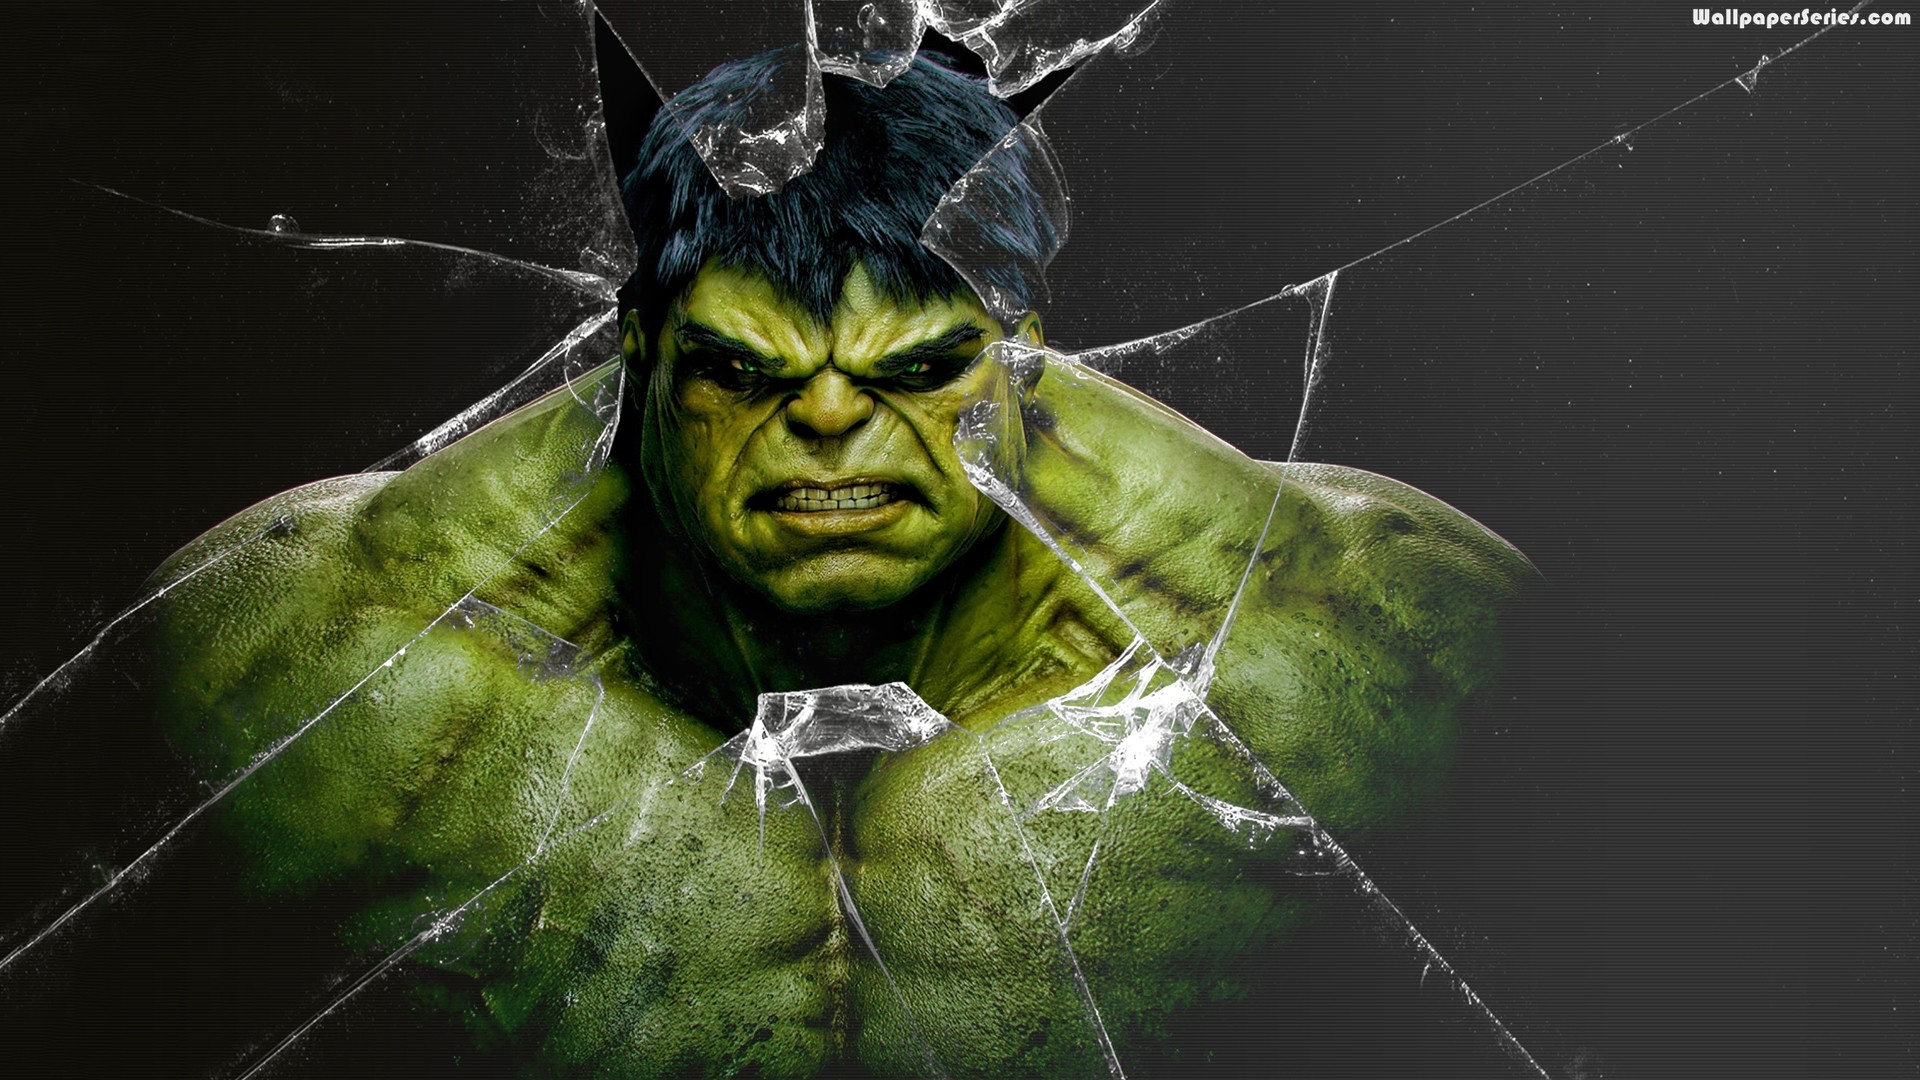 1920x1080 20 The Incredible Hulk Wallpapers | The Incredible Hulk  Backgrounds